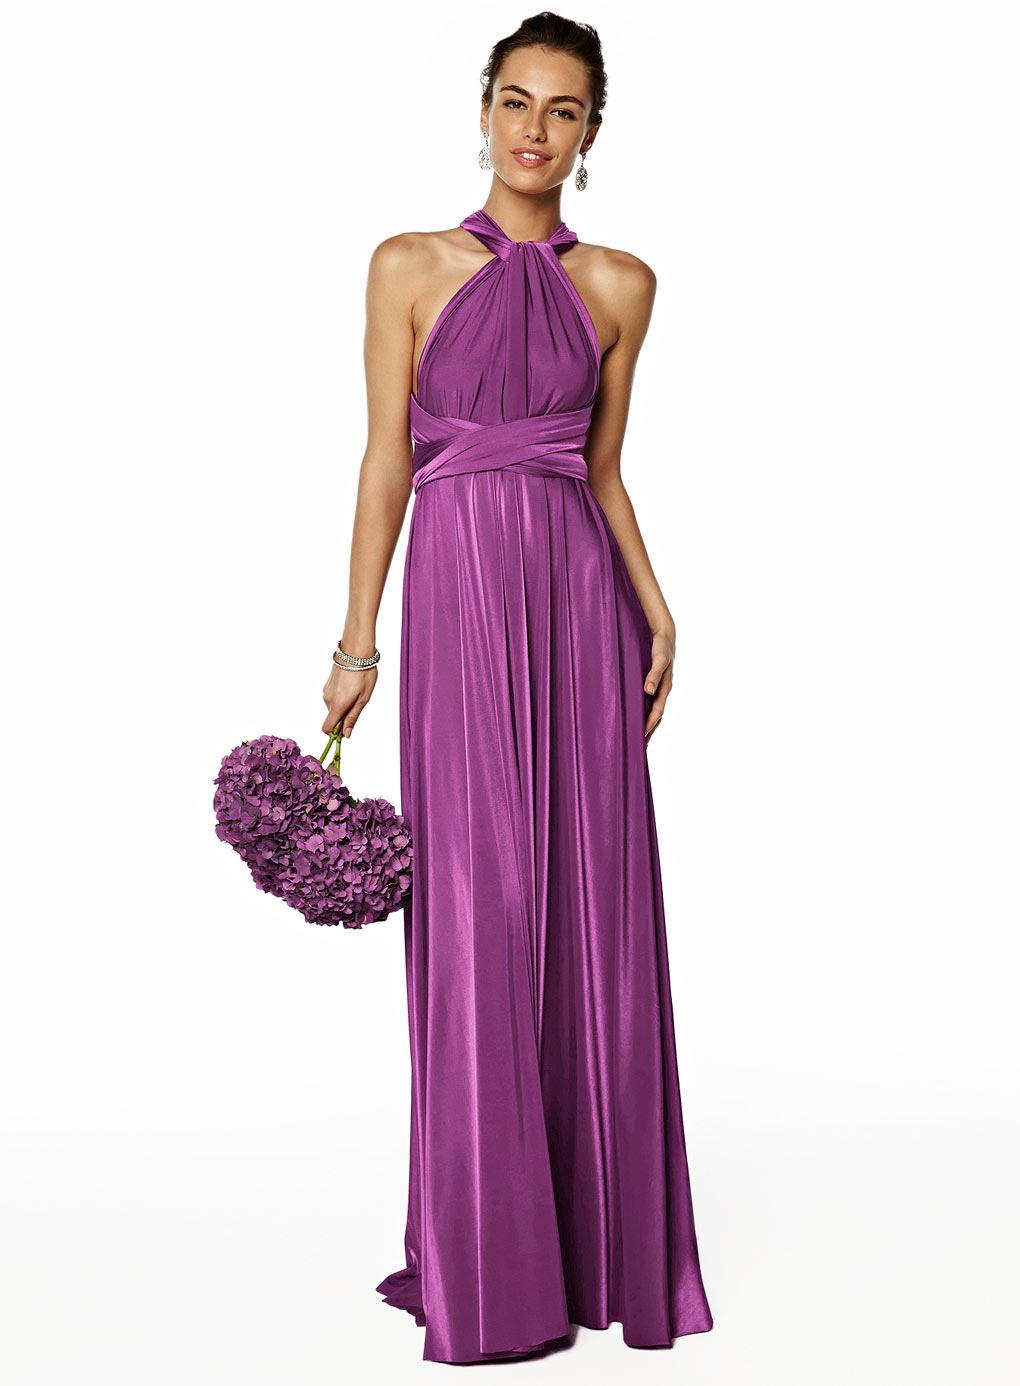 Awesome Bhs Purple Bridesmaid Dresses Vignette - Wedding Dress Ideas ...